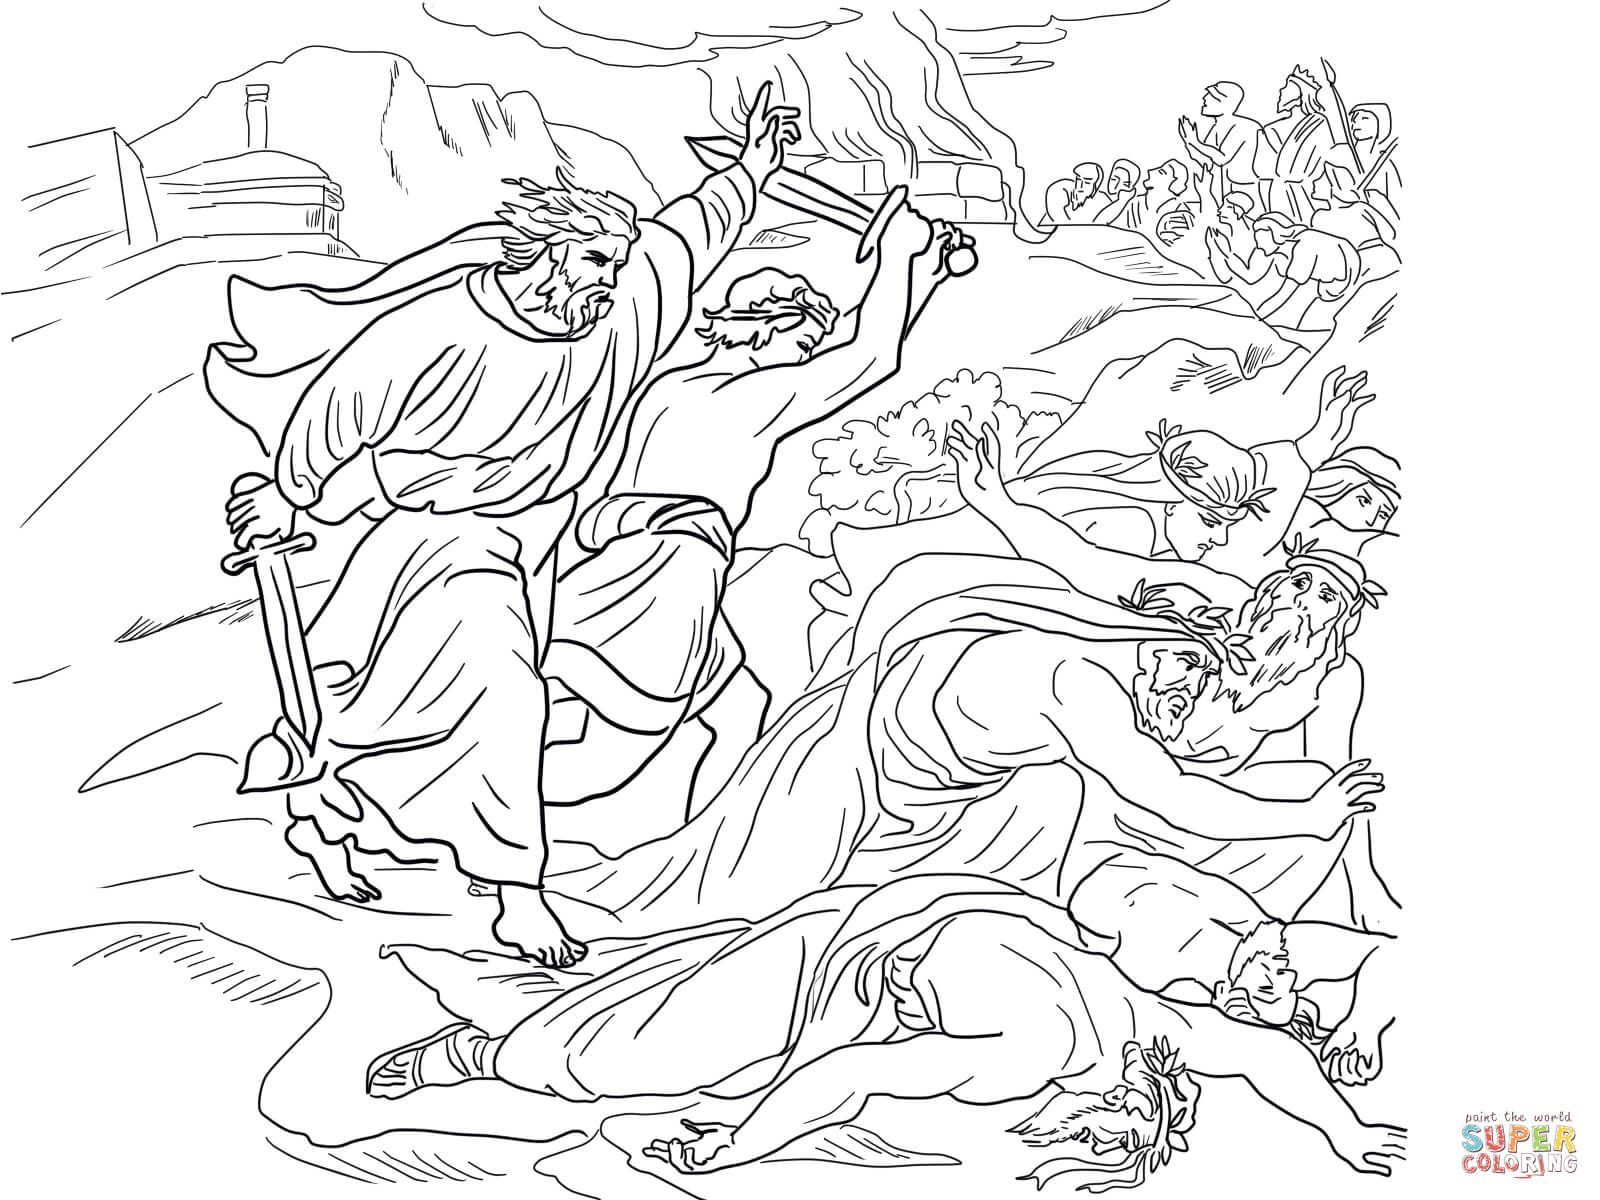 elijah defeats the prophets of baal coloring page from prophet elijah category select from 25587 printable crafts of cartoons nature animals bible and - Elijah Bible Story Coloring Pages